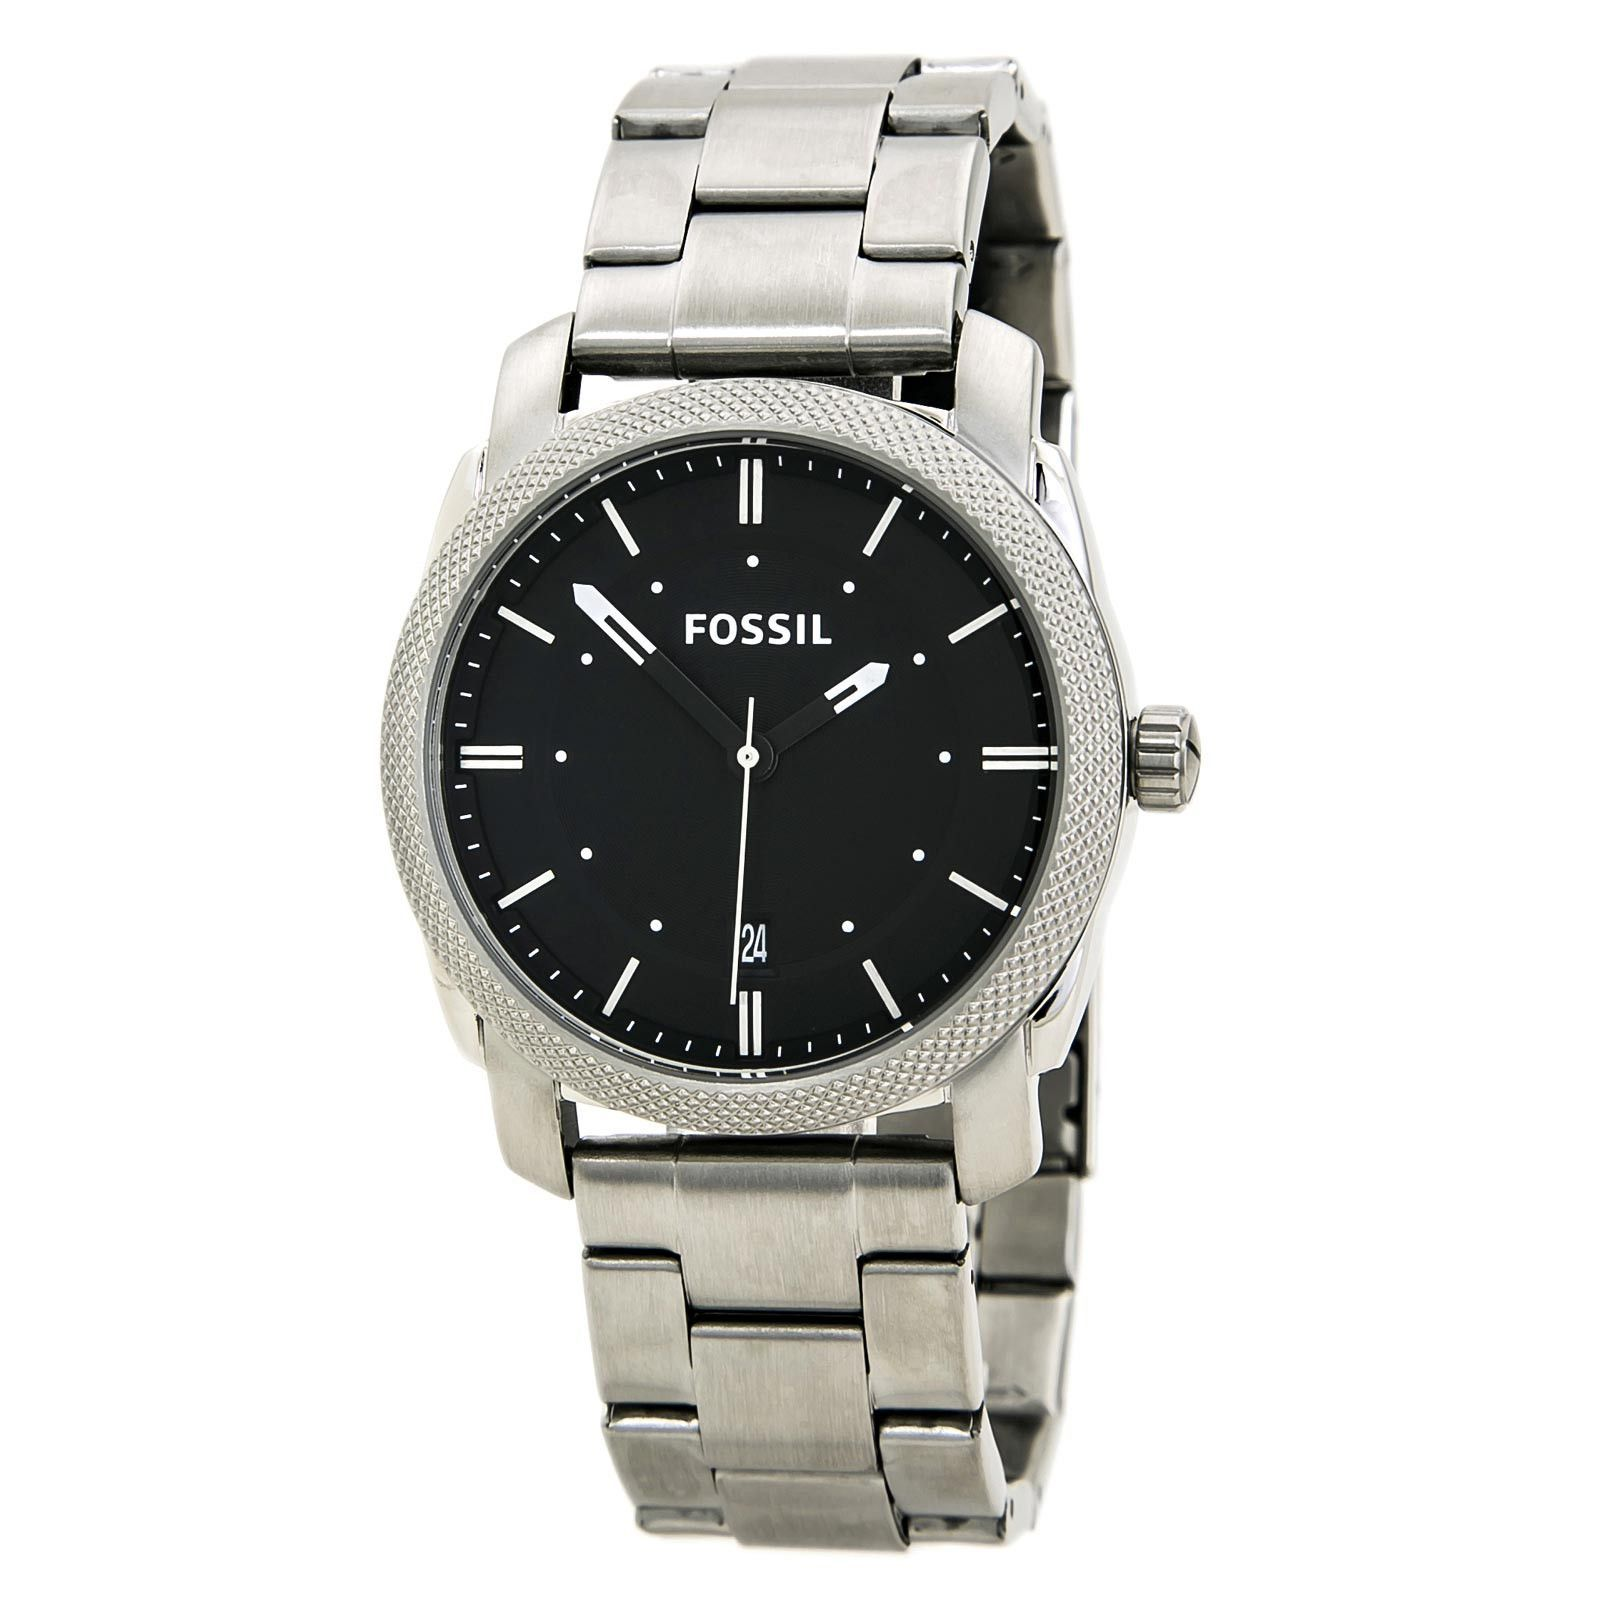 Fossil FS4773 Men's Machine Black Dial Stainless Steel Bracelet Watch